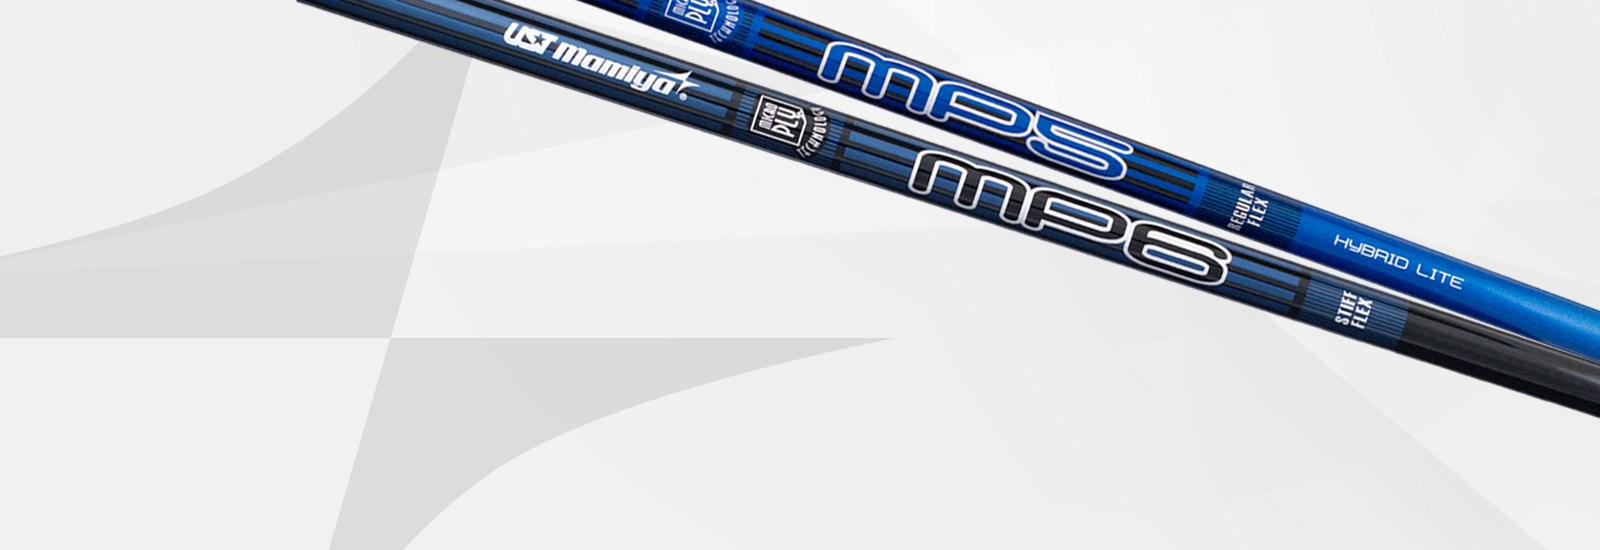 UST Mamiya MP Golf Shafts